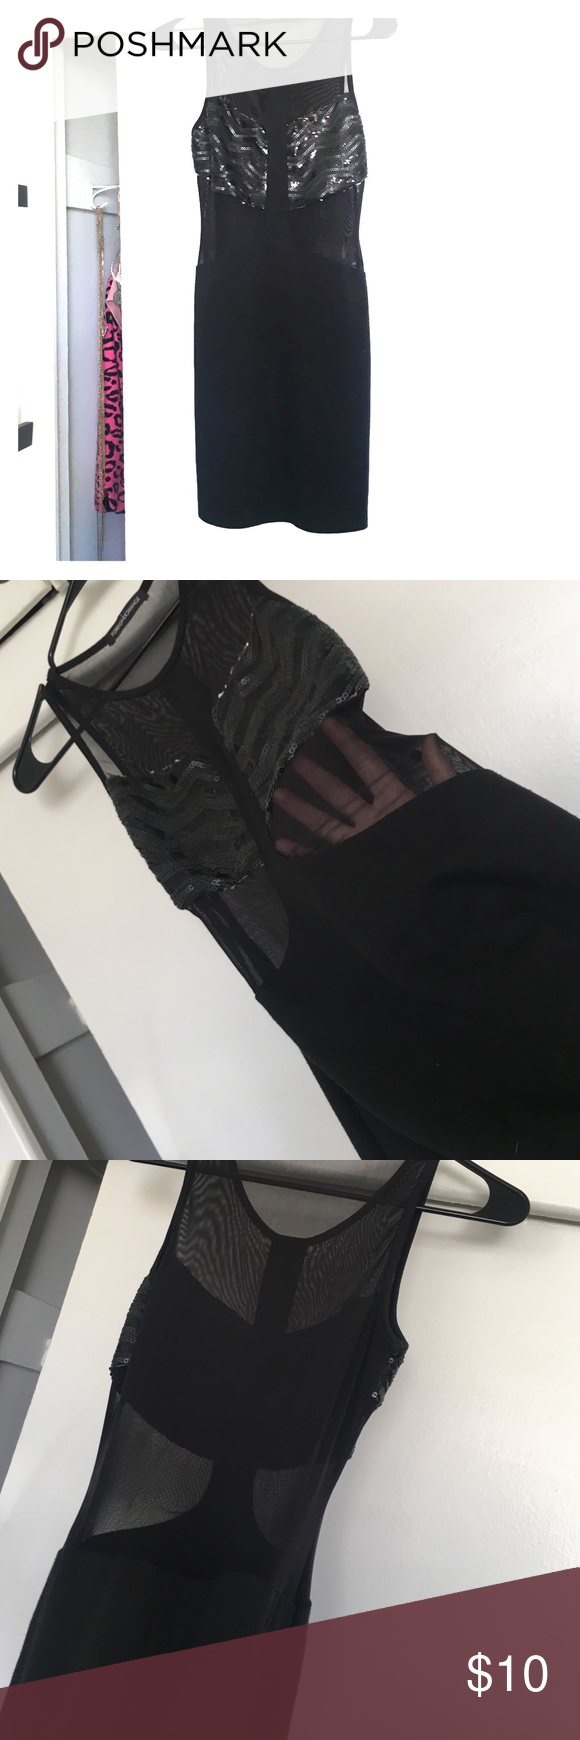 Black mesh dress black mesh and sequin dress so cute most of the